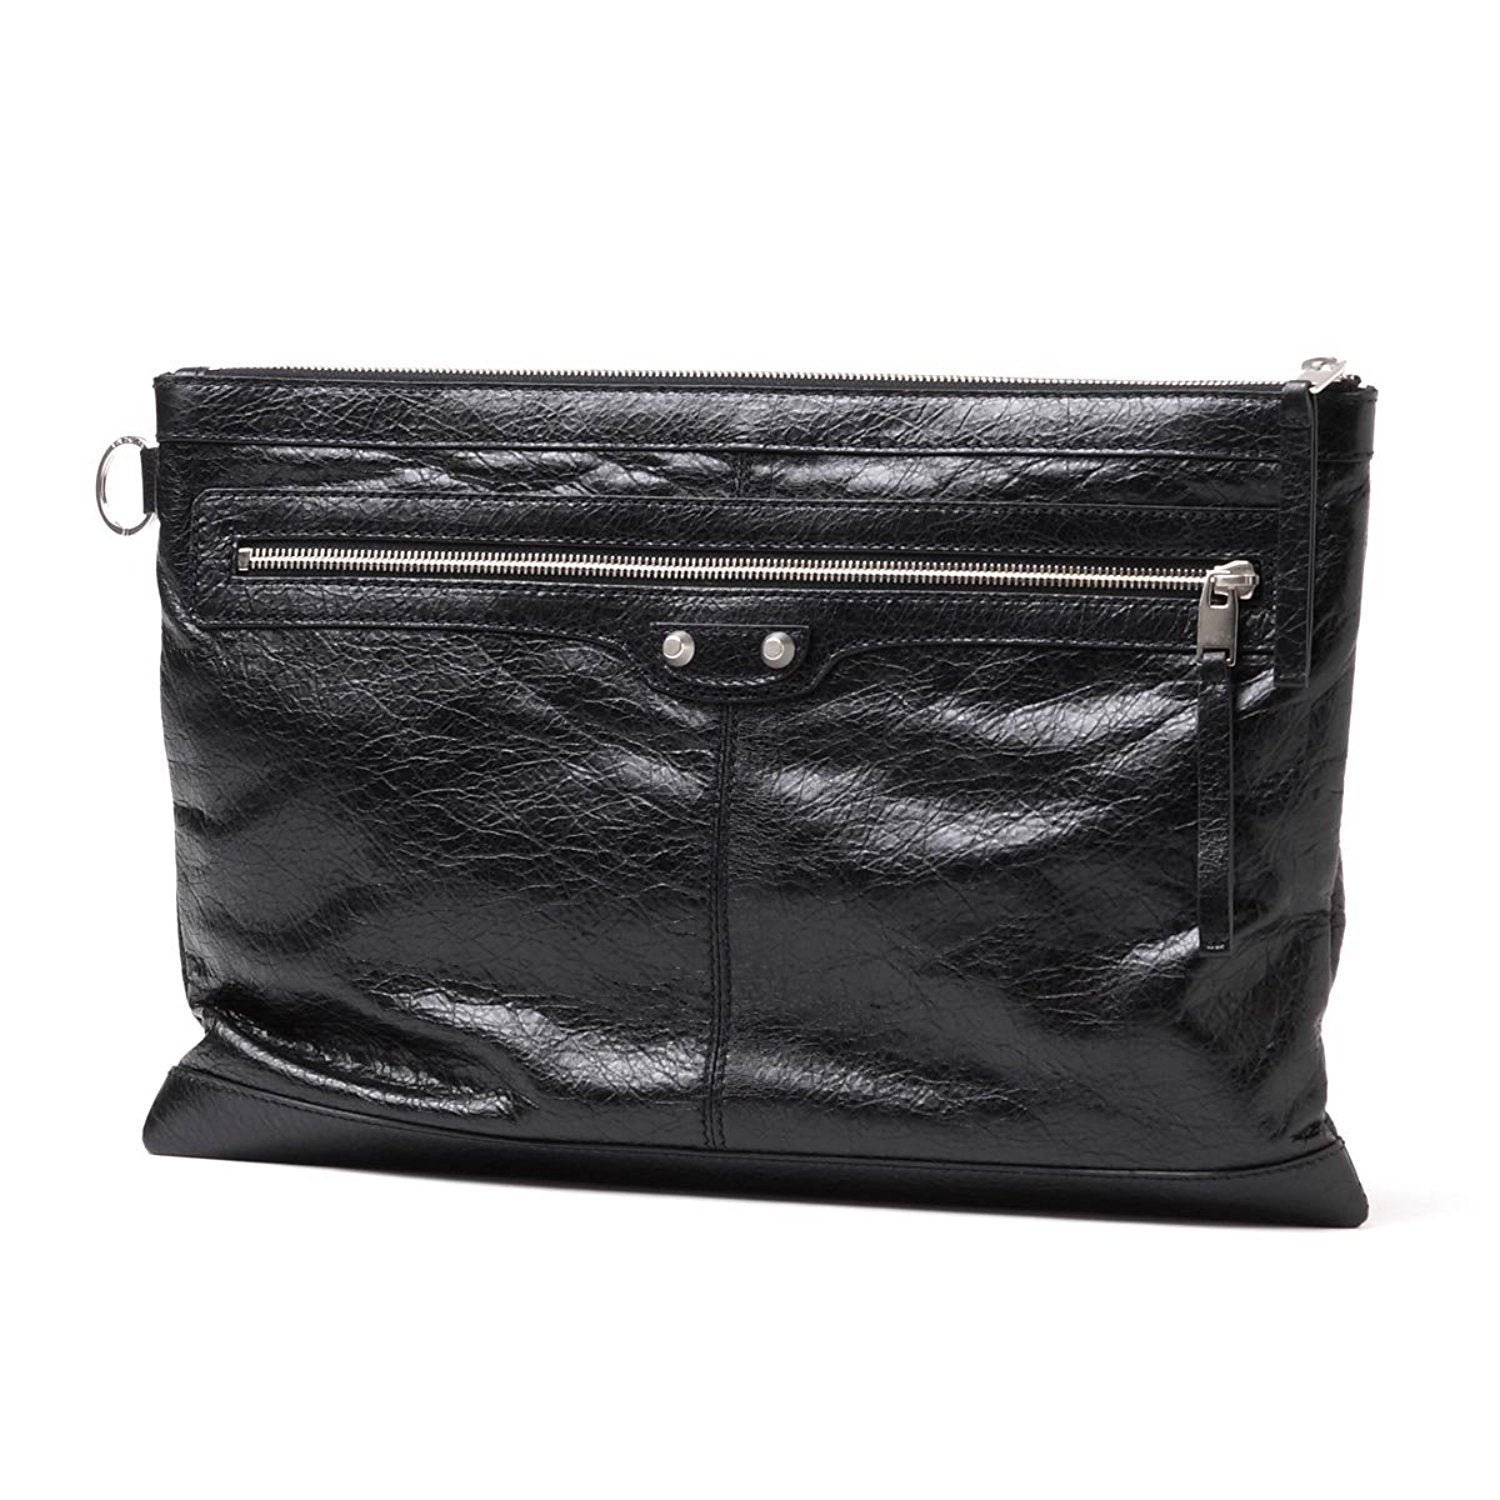 Balenciaga Unisex Black Pebbled Leather Oversized Clutch Bag 273023 Handbags Balenciaga